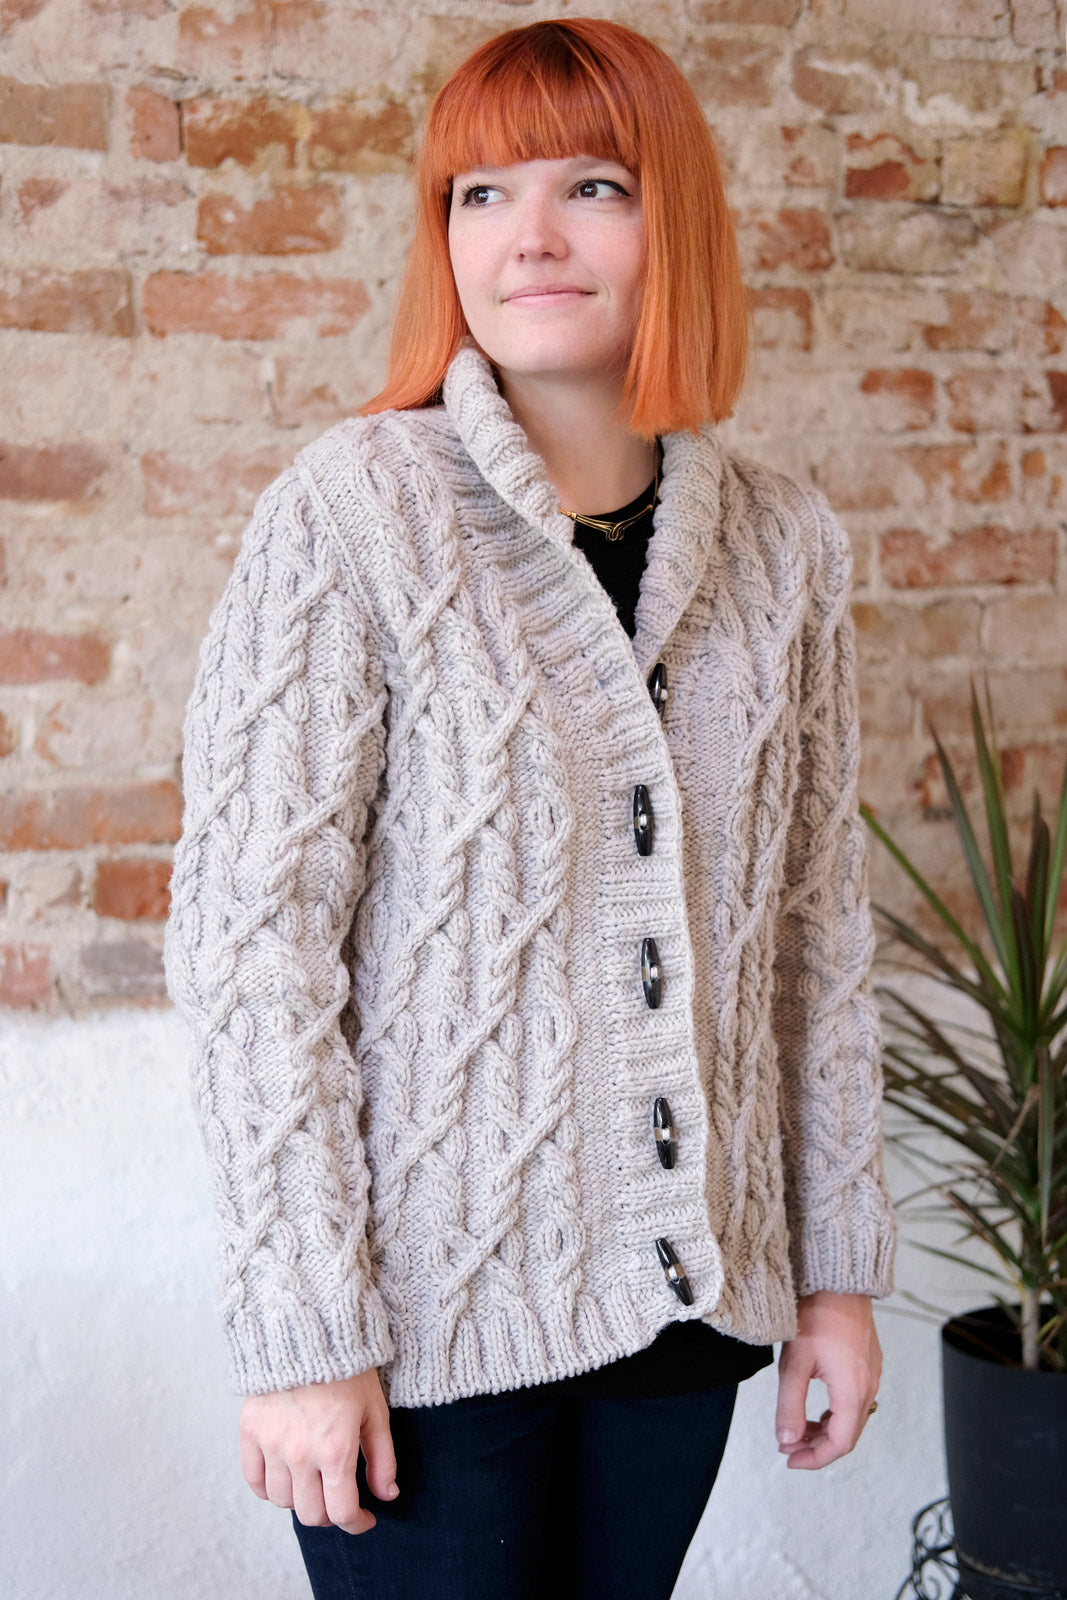 Michele Wang's Snoqualmie Cardigan